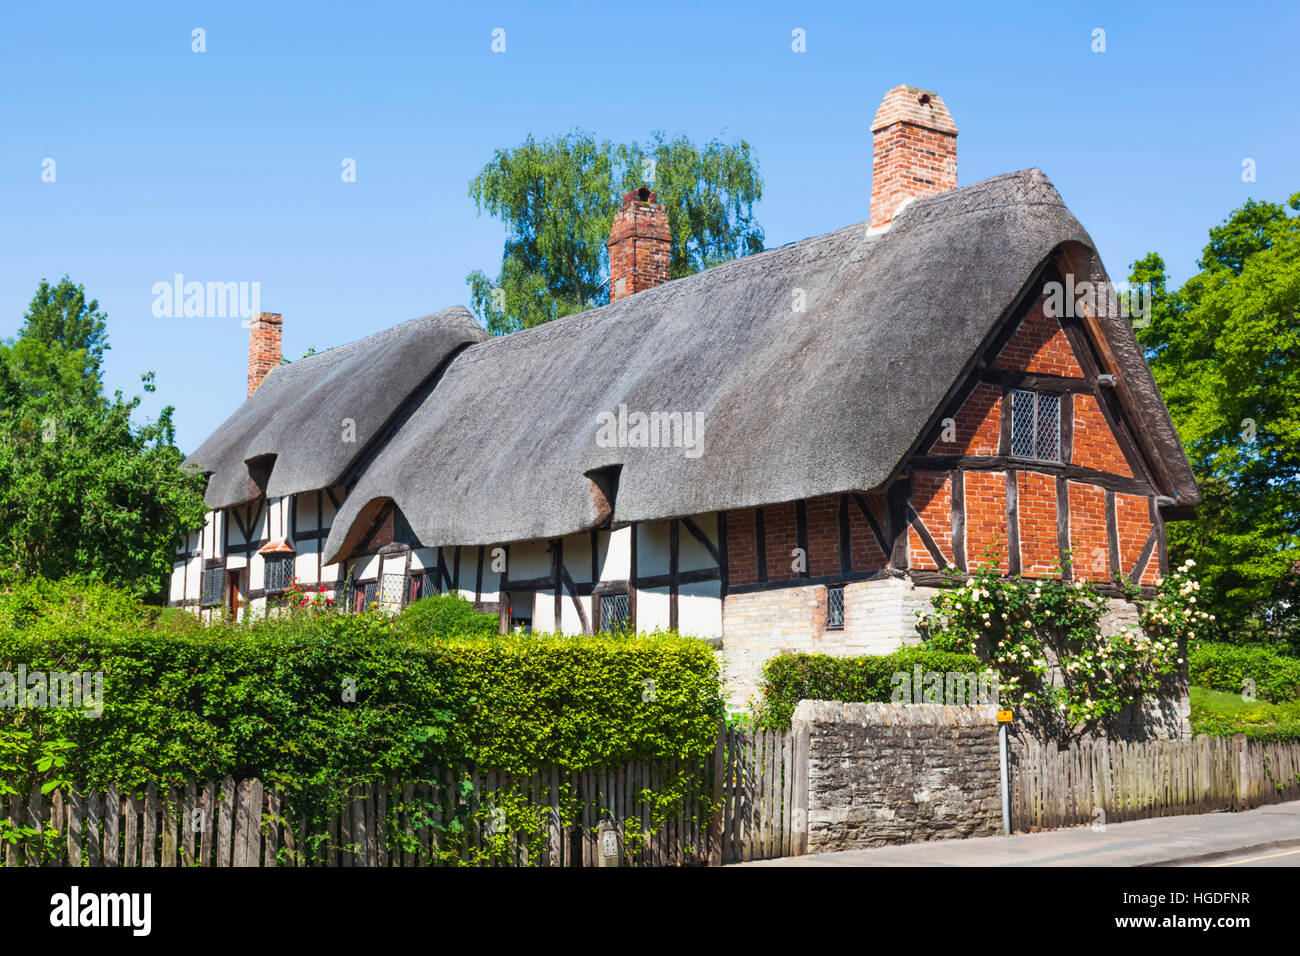 England, Warwickshire, Cotswolds, Stratford-Upon-Avon, Anne Hathaway's Cottage - Stock Image